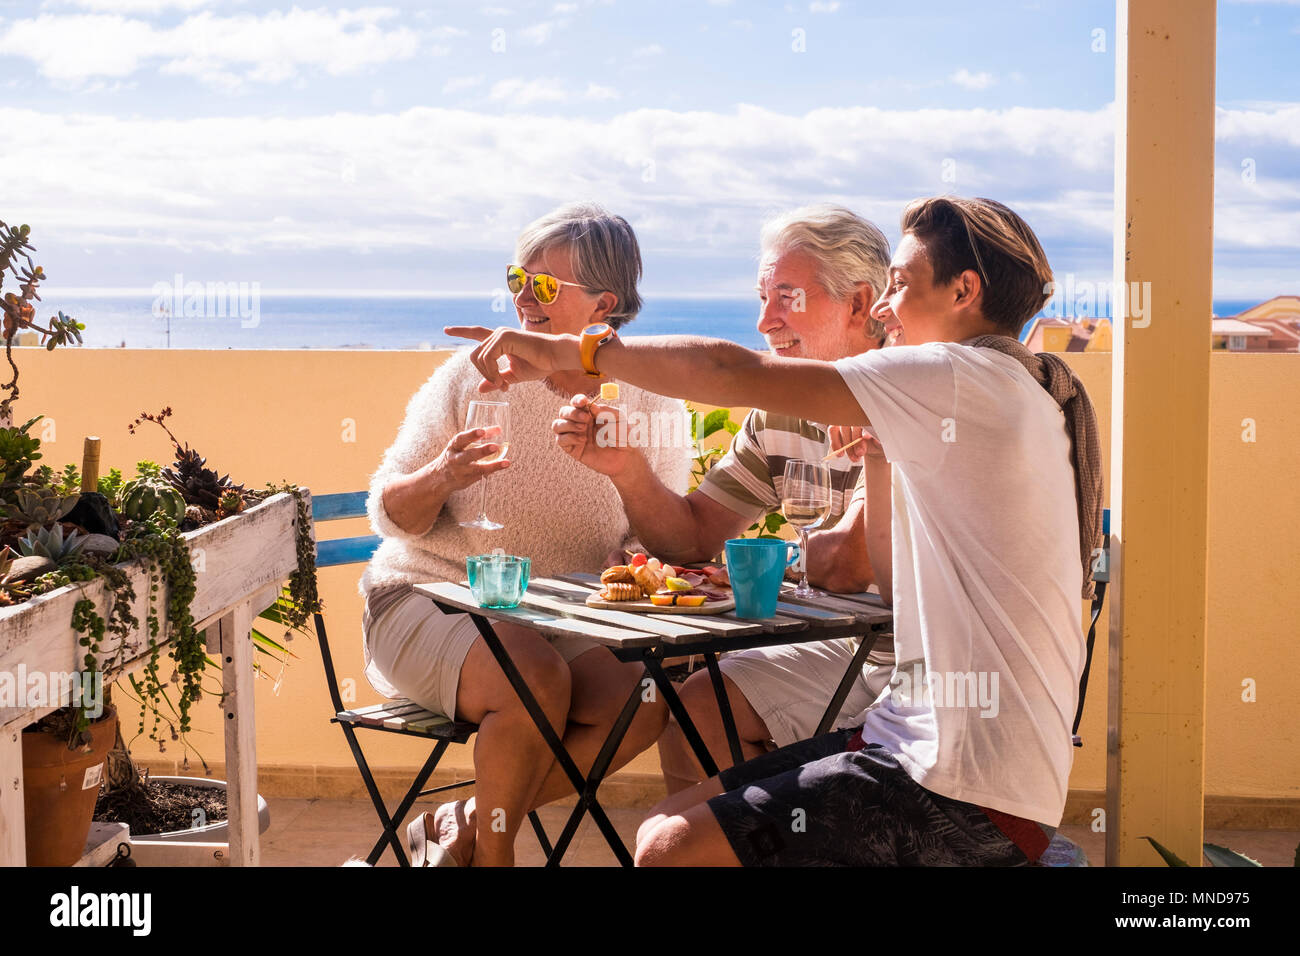 couple of grandfathers with young boy teen stay together in the rooftop with ocean view in vacation. Nice time for breakfast or brunch in a sunny day - Stock Image